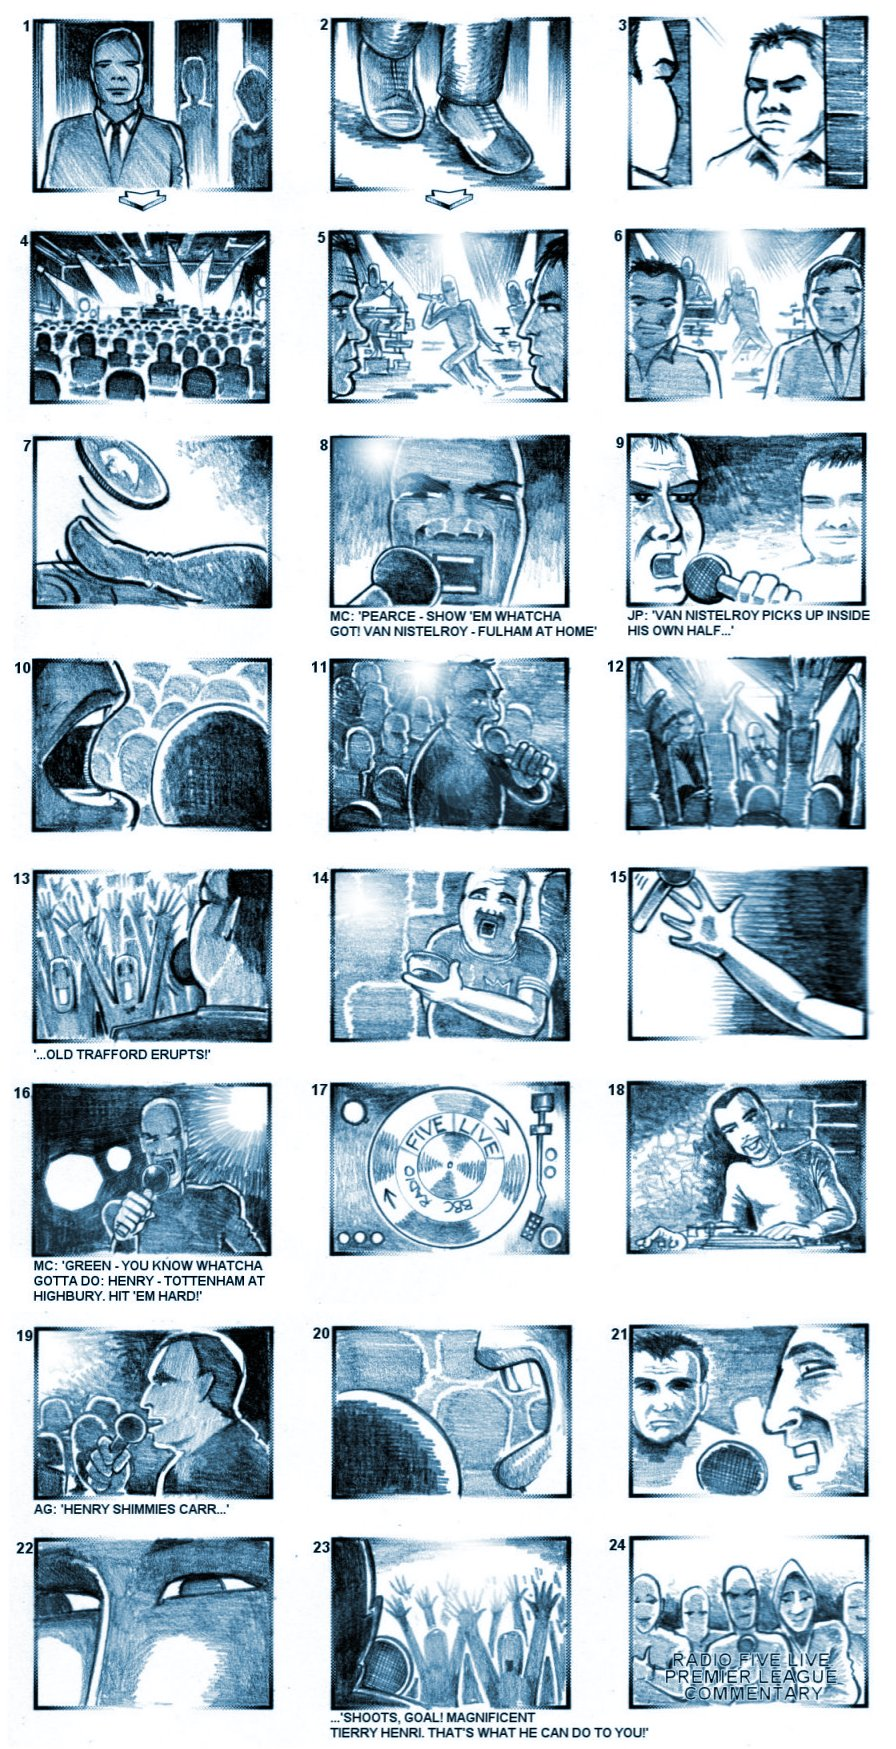 RADIO 5 LIVE COMMENTARY STORYBOARDS BY ANDY SPARROW